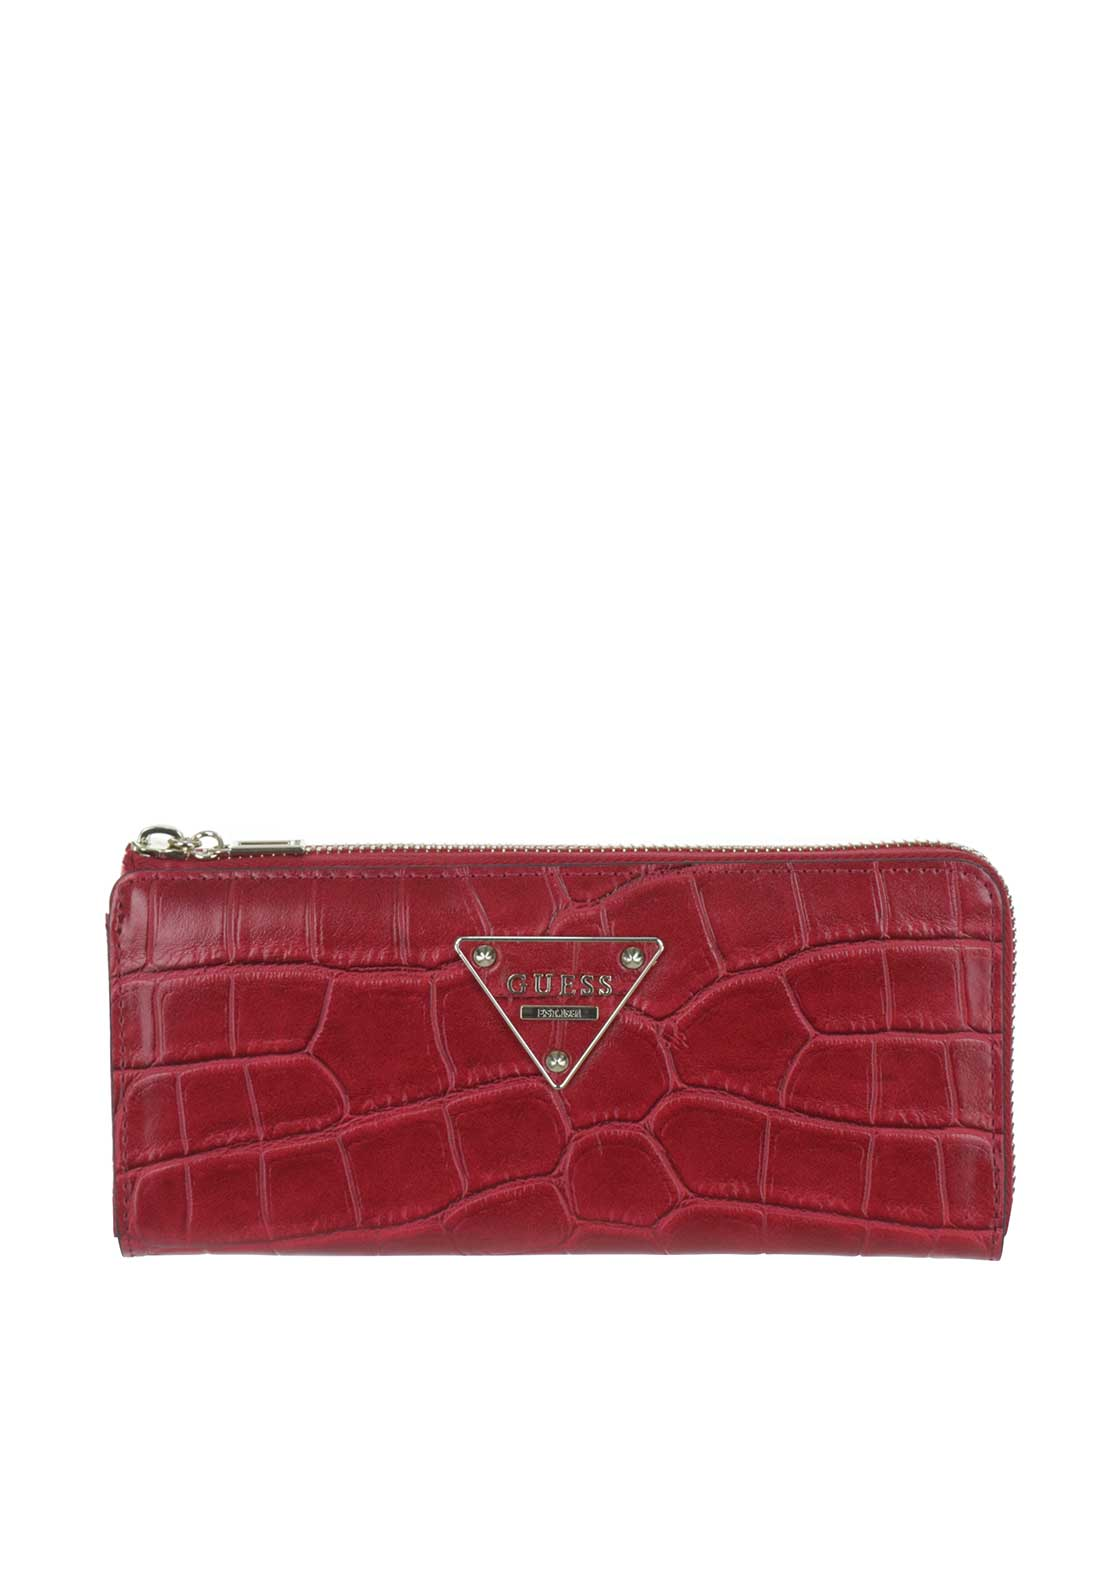 Guess Rhoda Zip around Purse, Ruby